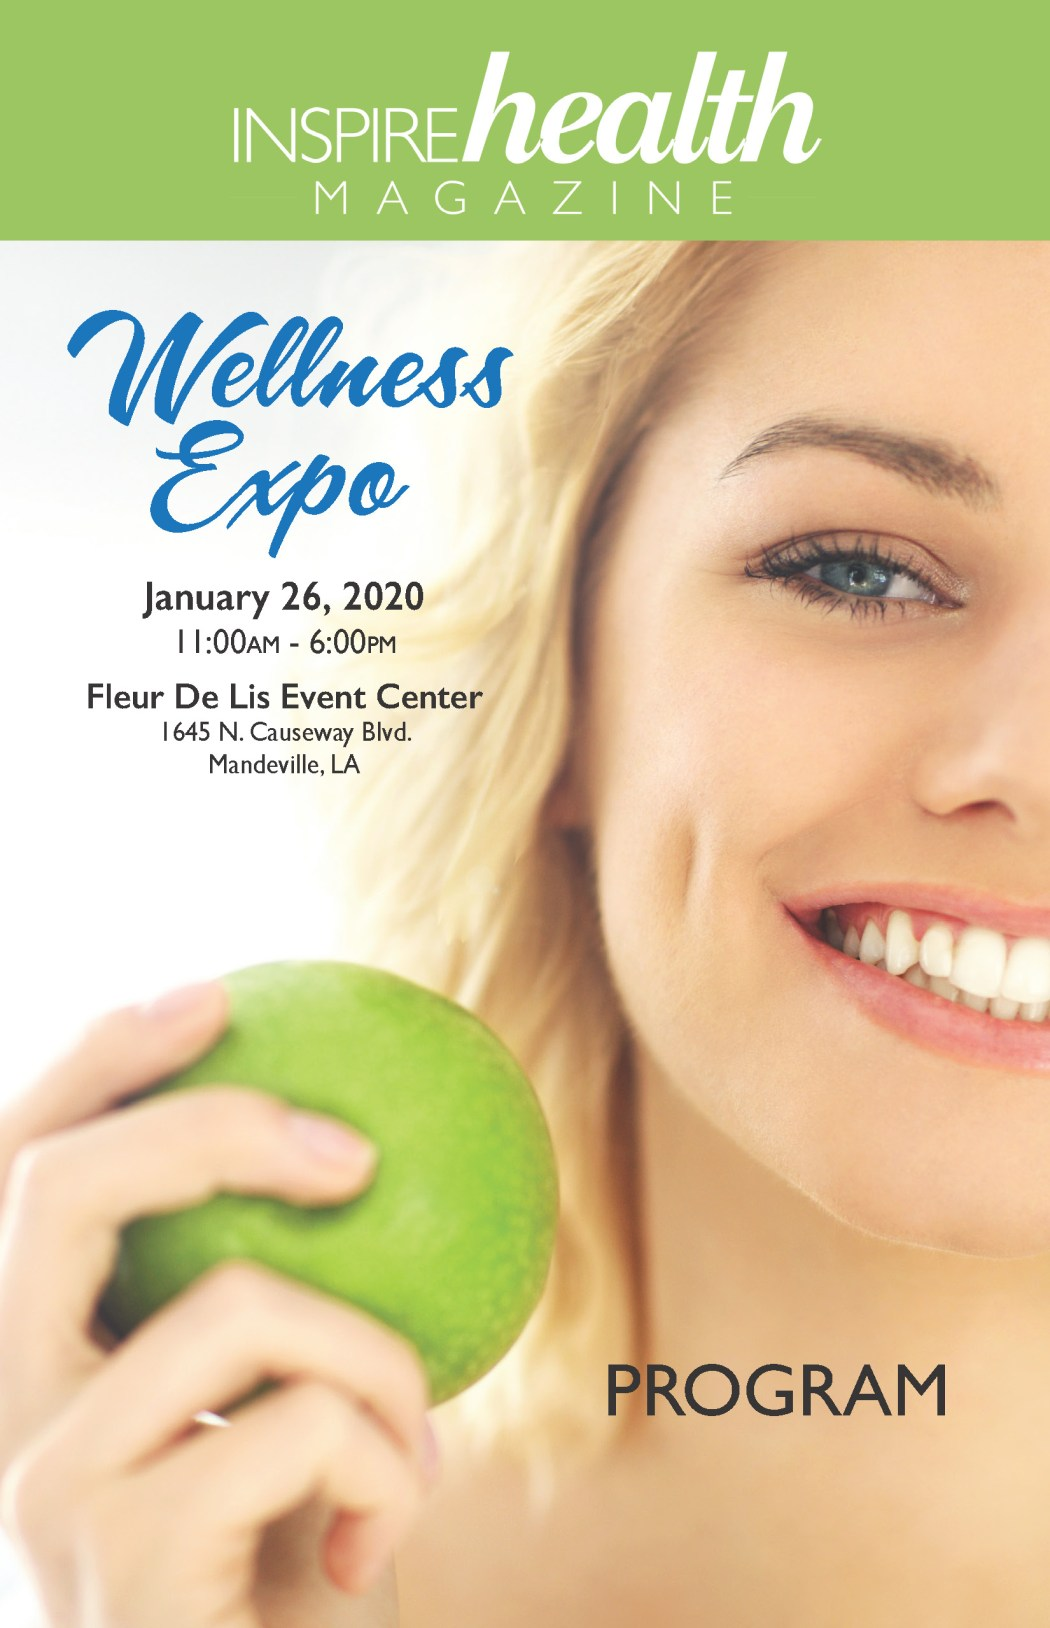 Inspire Health Magazine 2020 Wellness Expo Program